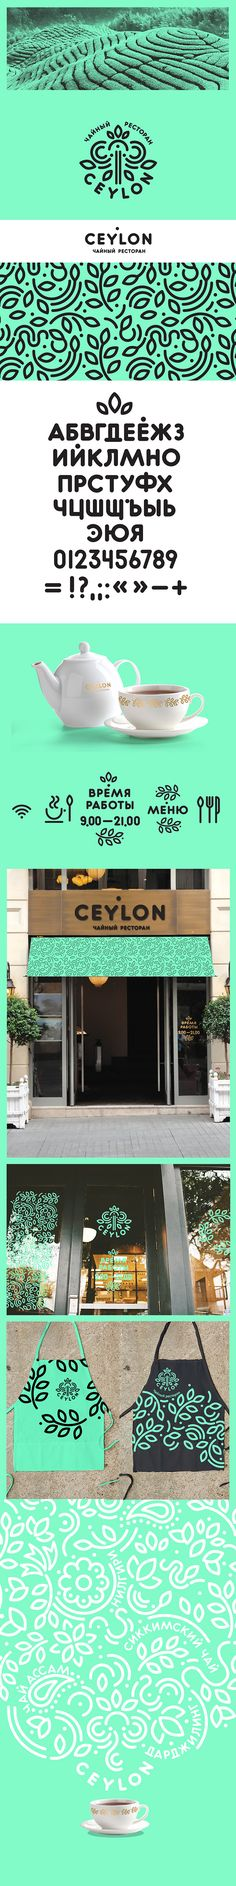 CEYLON tea restaurant by Rushavel Sultanov, via Behance